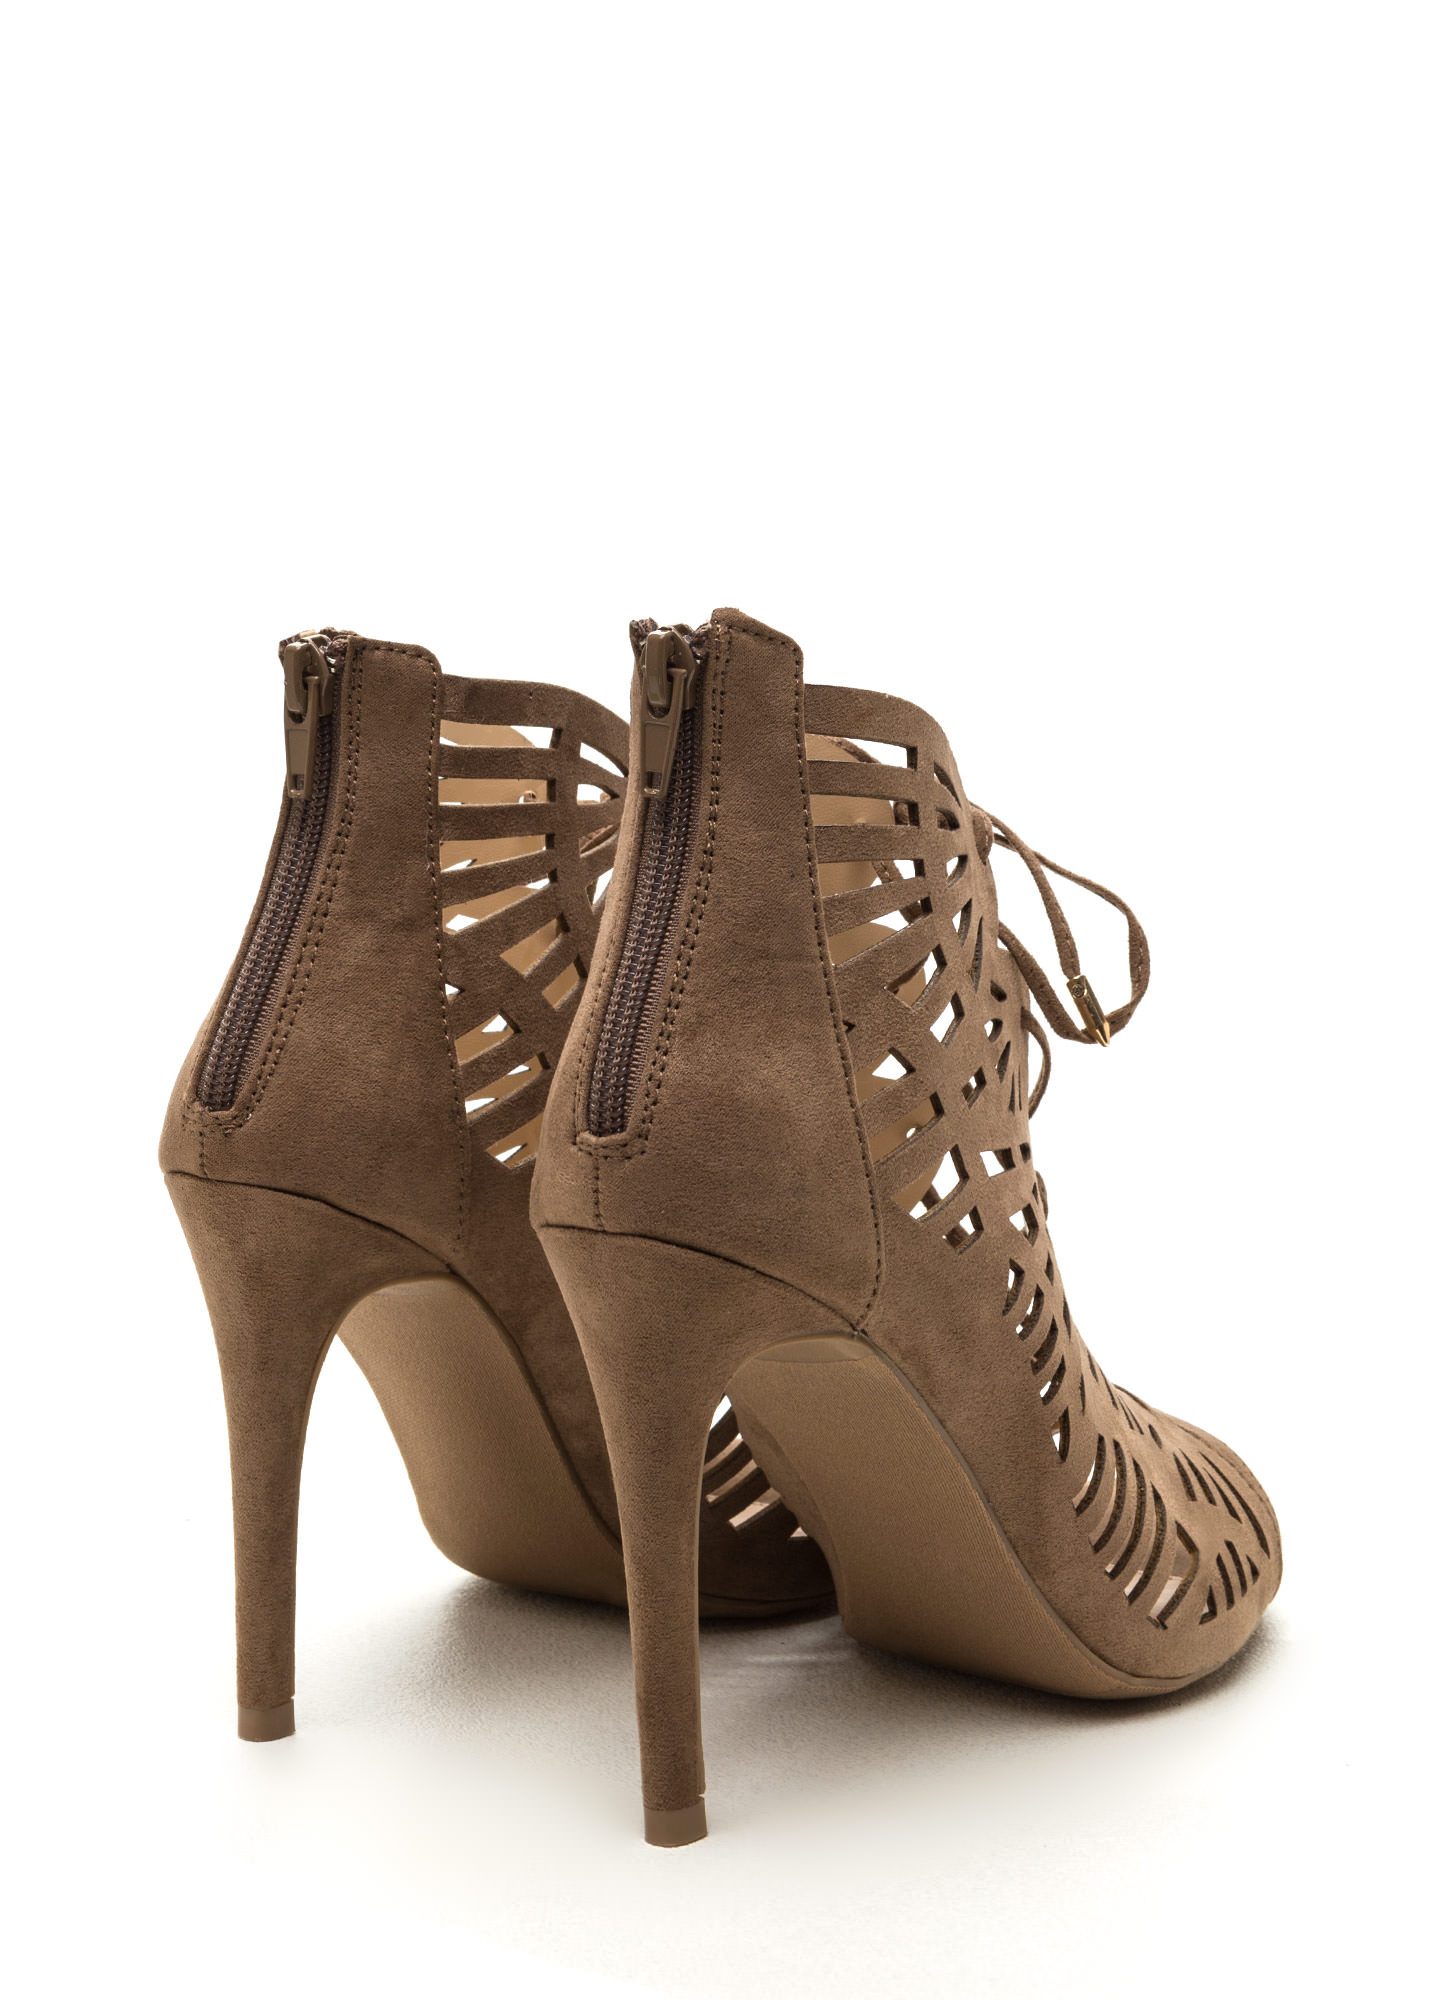 Take A Peek Cut-Out Lace-Up Heels TAUPE